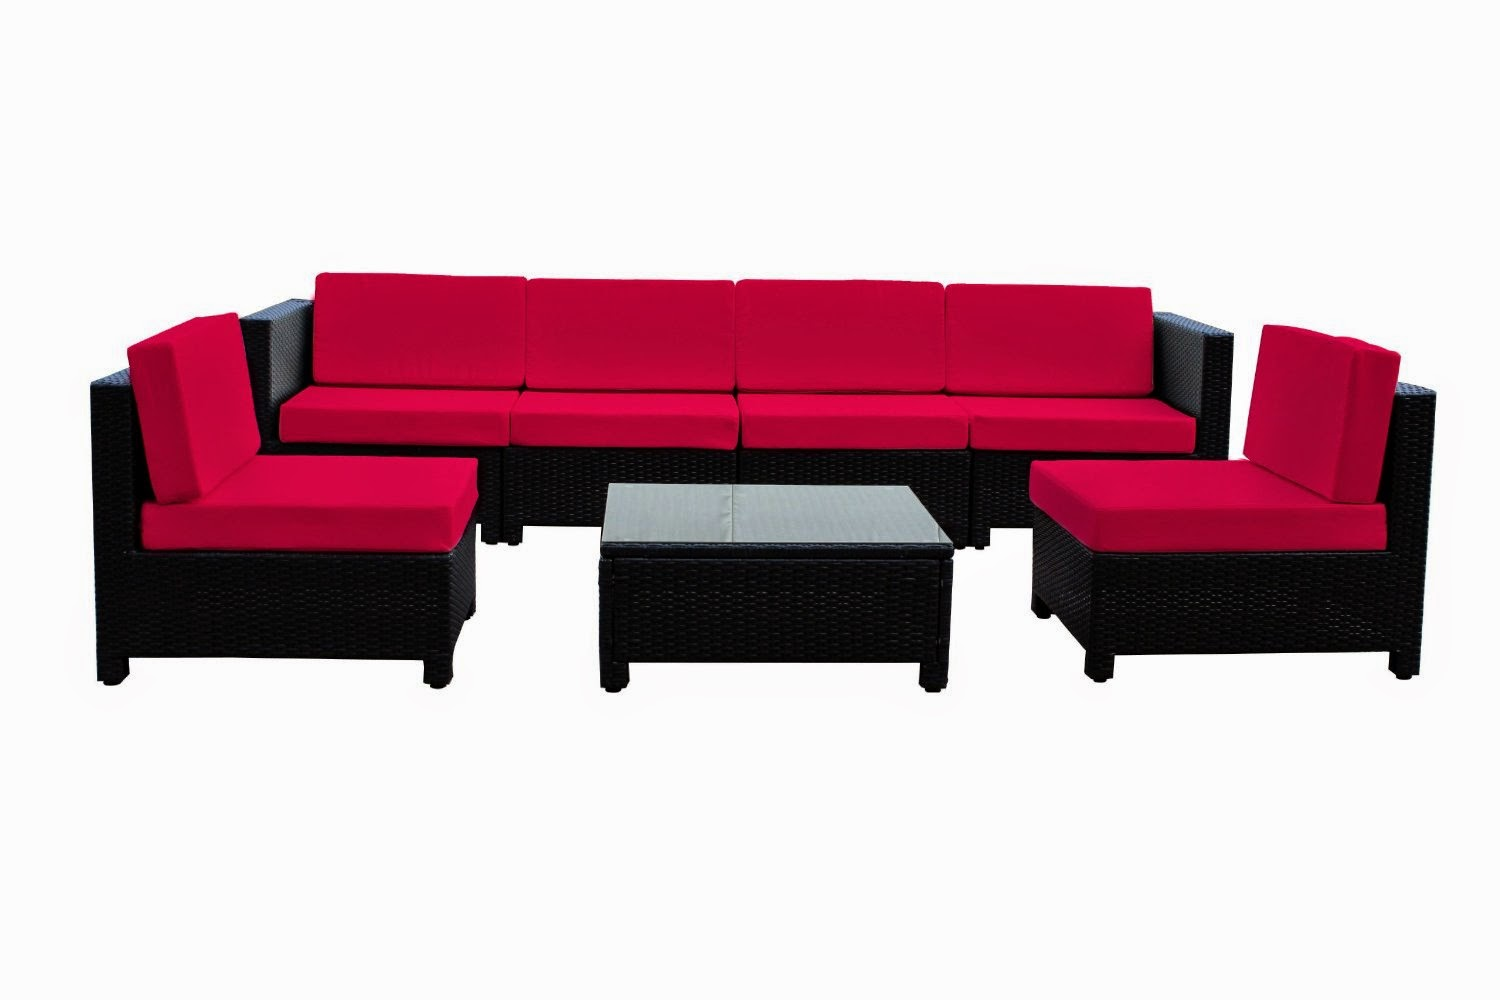 Outdoor Sofa Furniture Cheers Sectional Special Price Discount 66 7 Pcs Luxury Wicker Patio